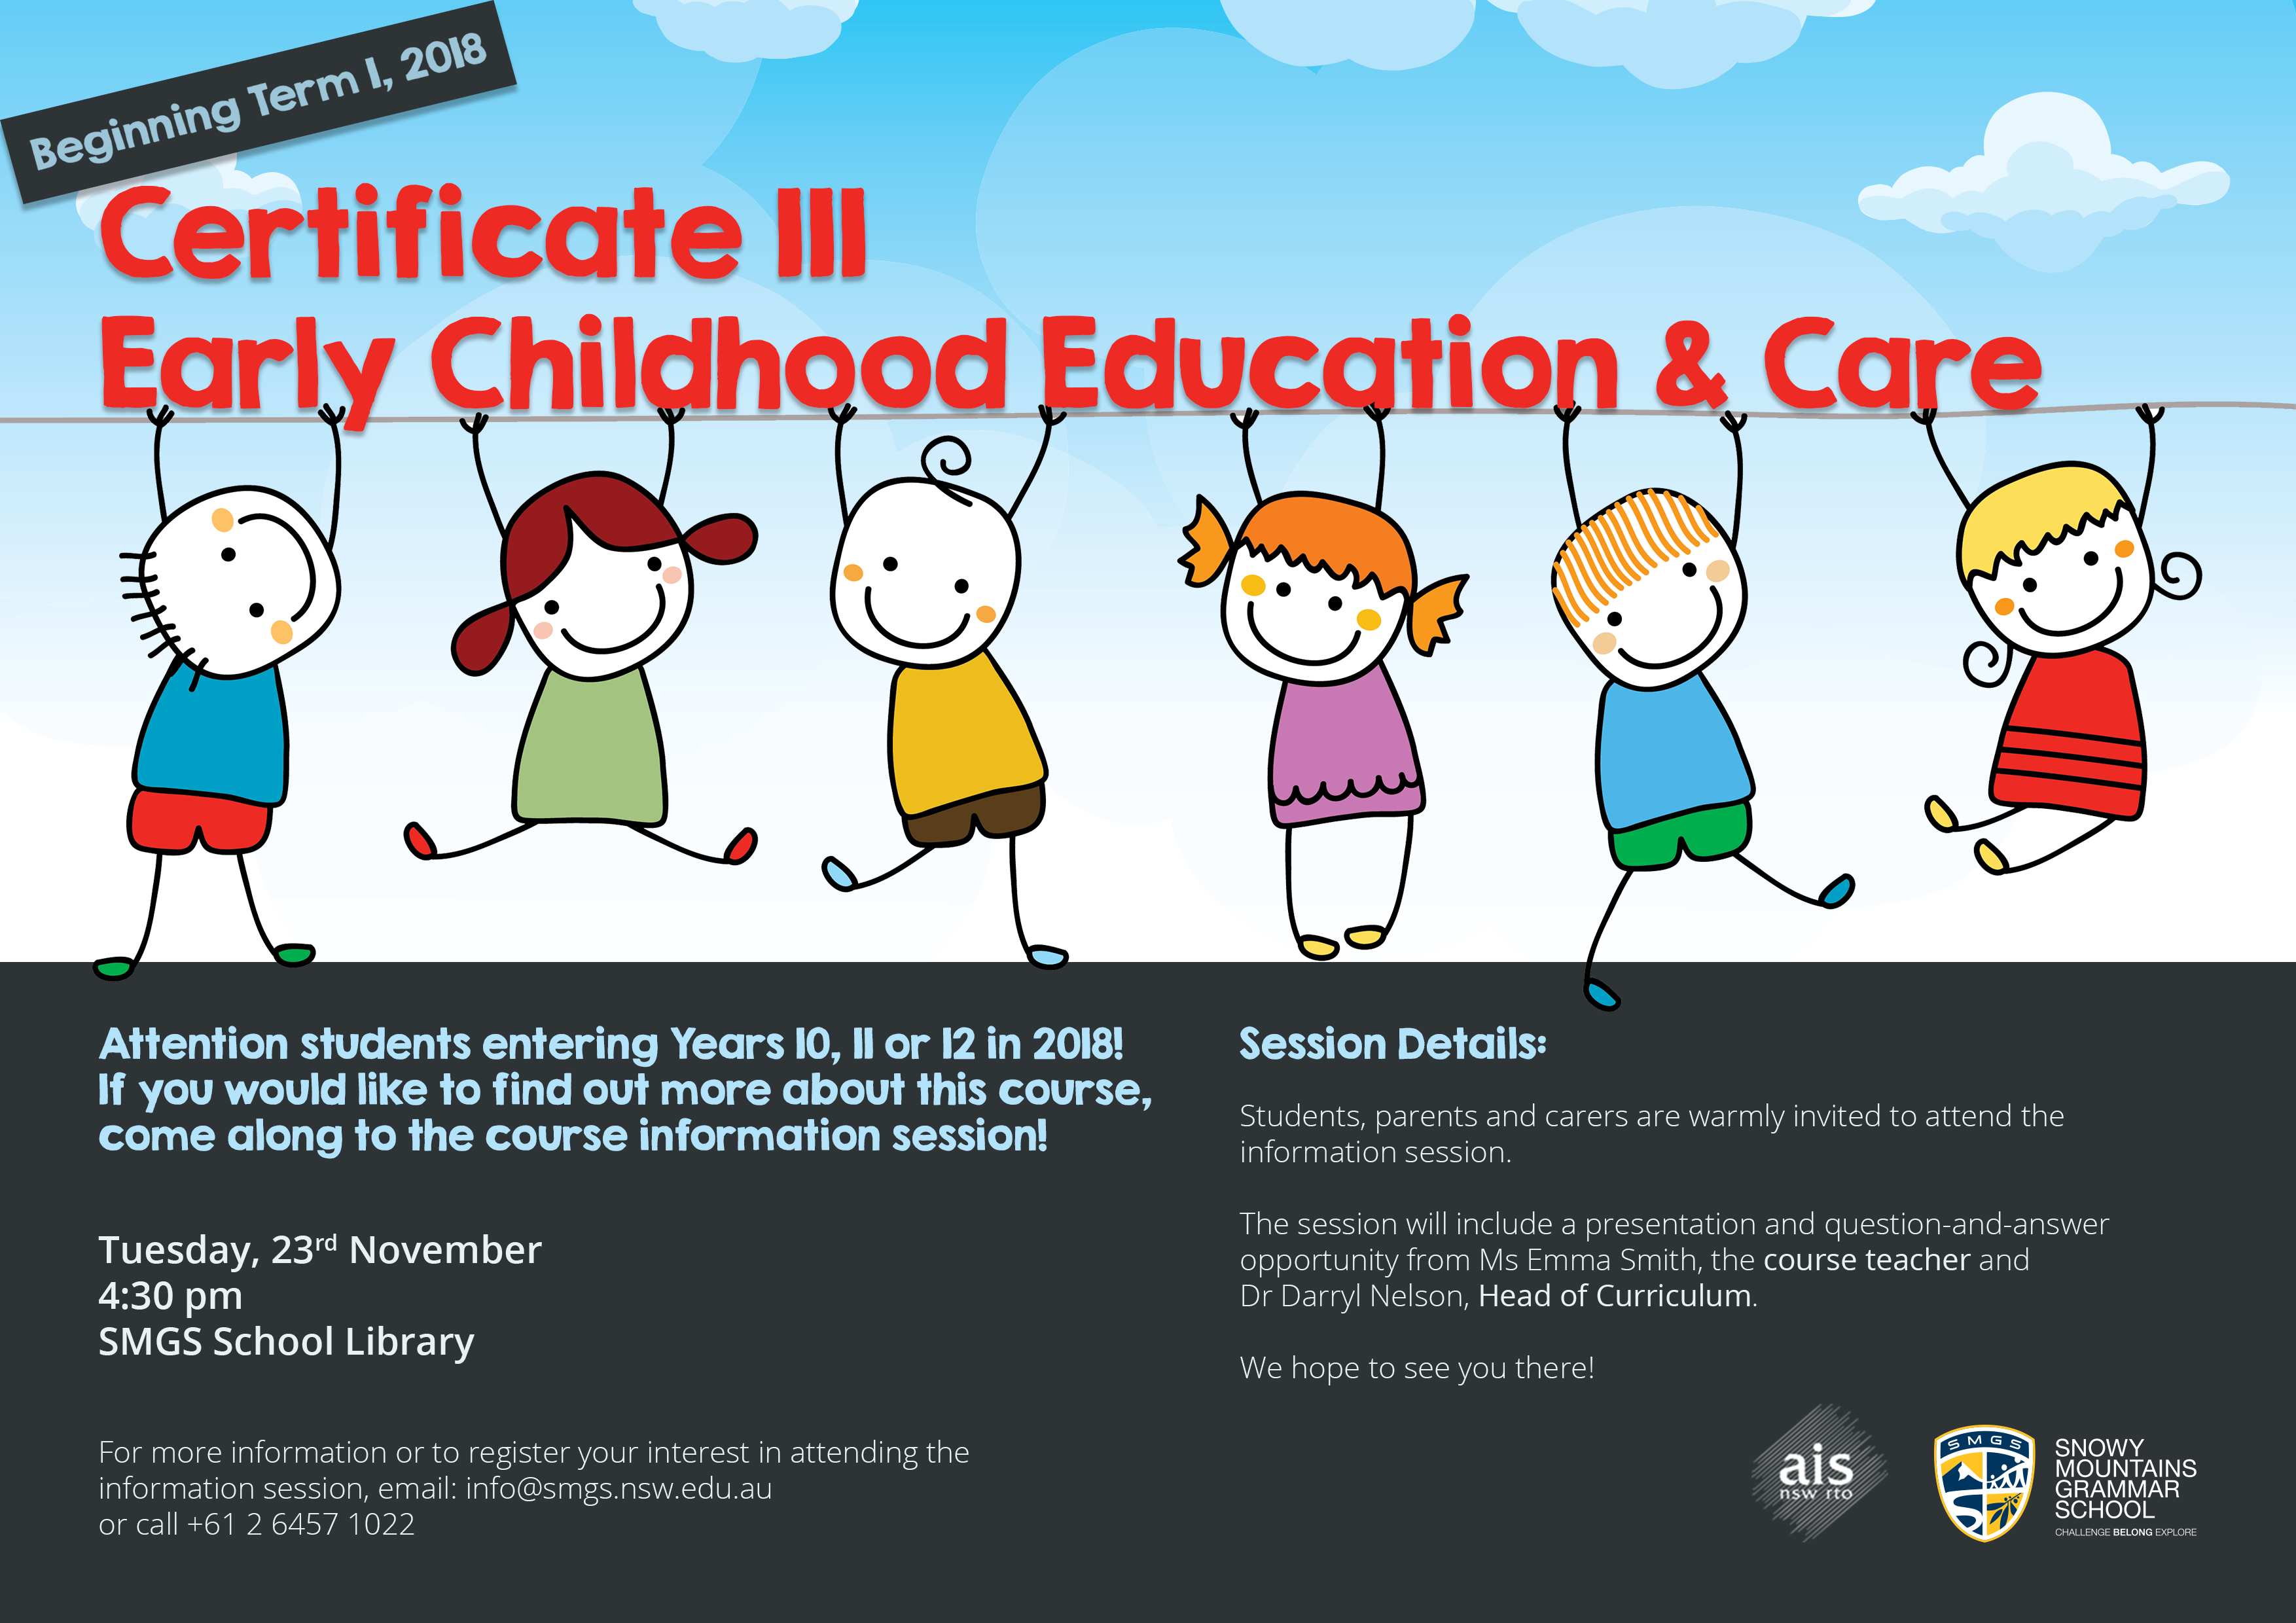 Smgs To Deliver Certificate 3 In Early Childhood Education And Care